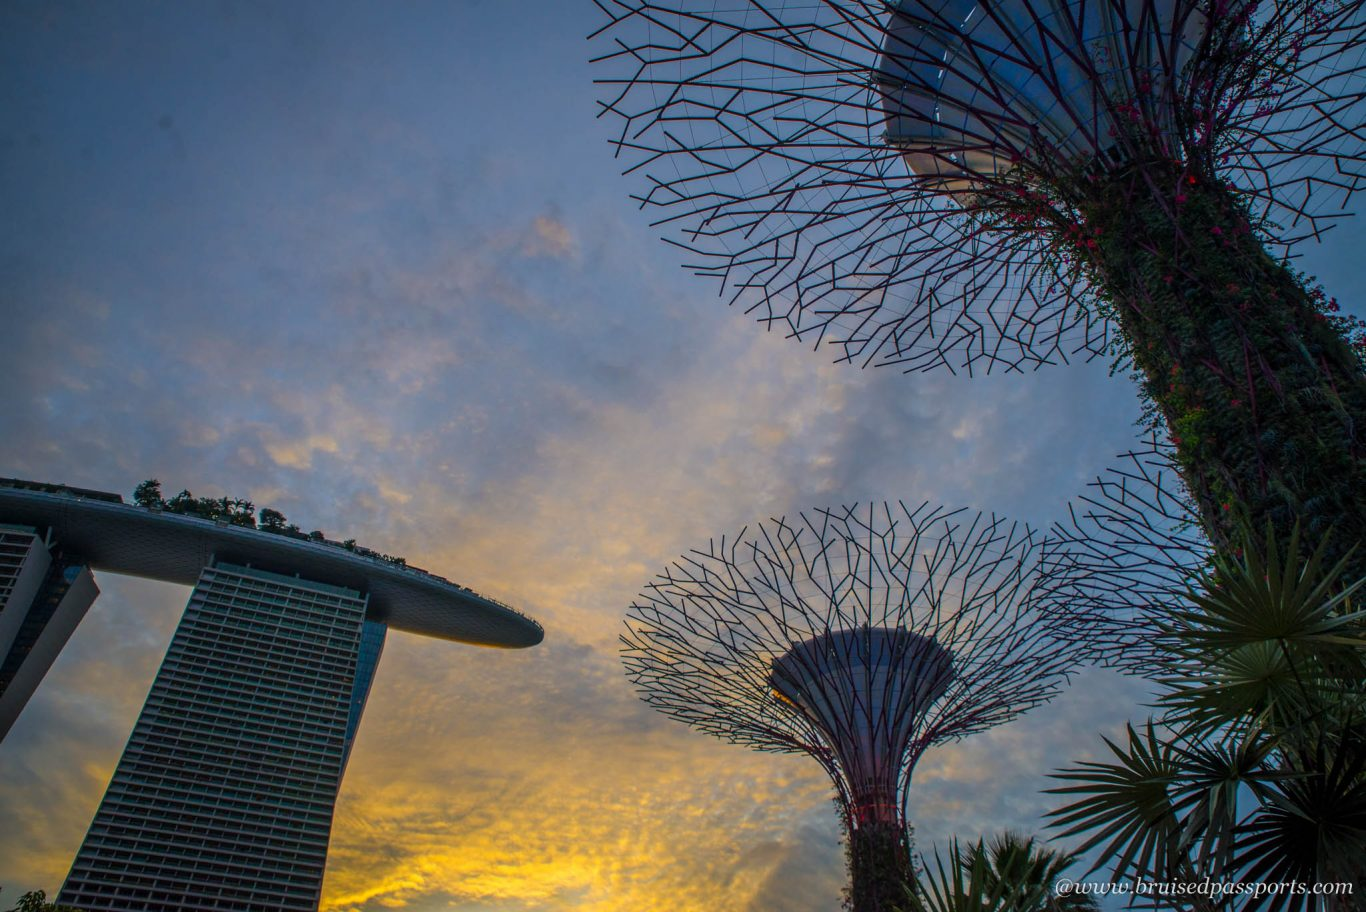 Gardens by the bay sunset Singapore